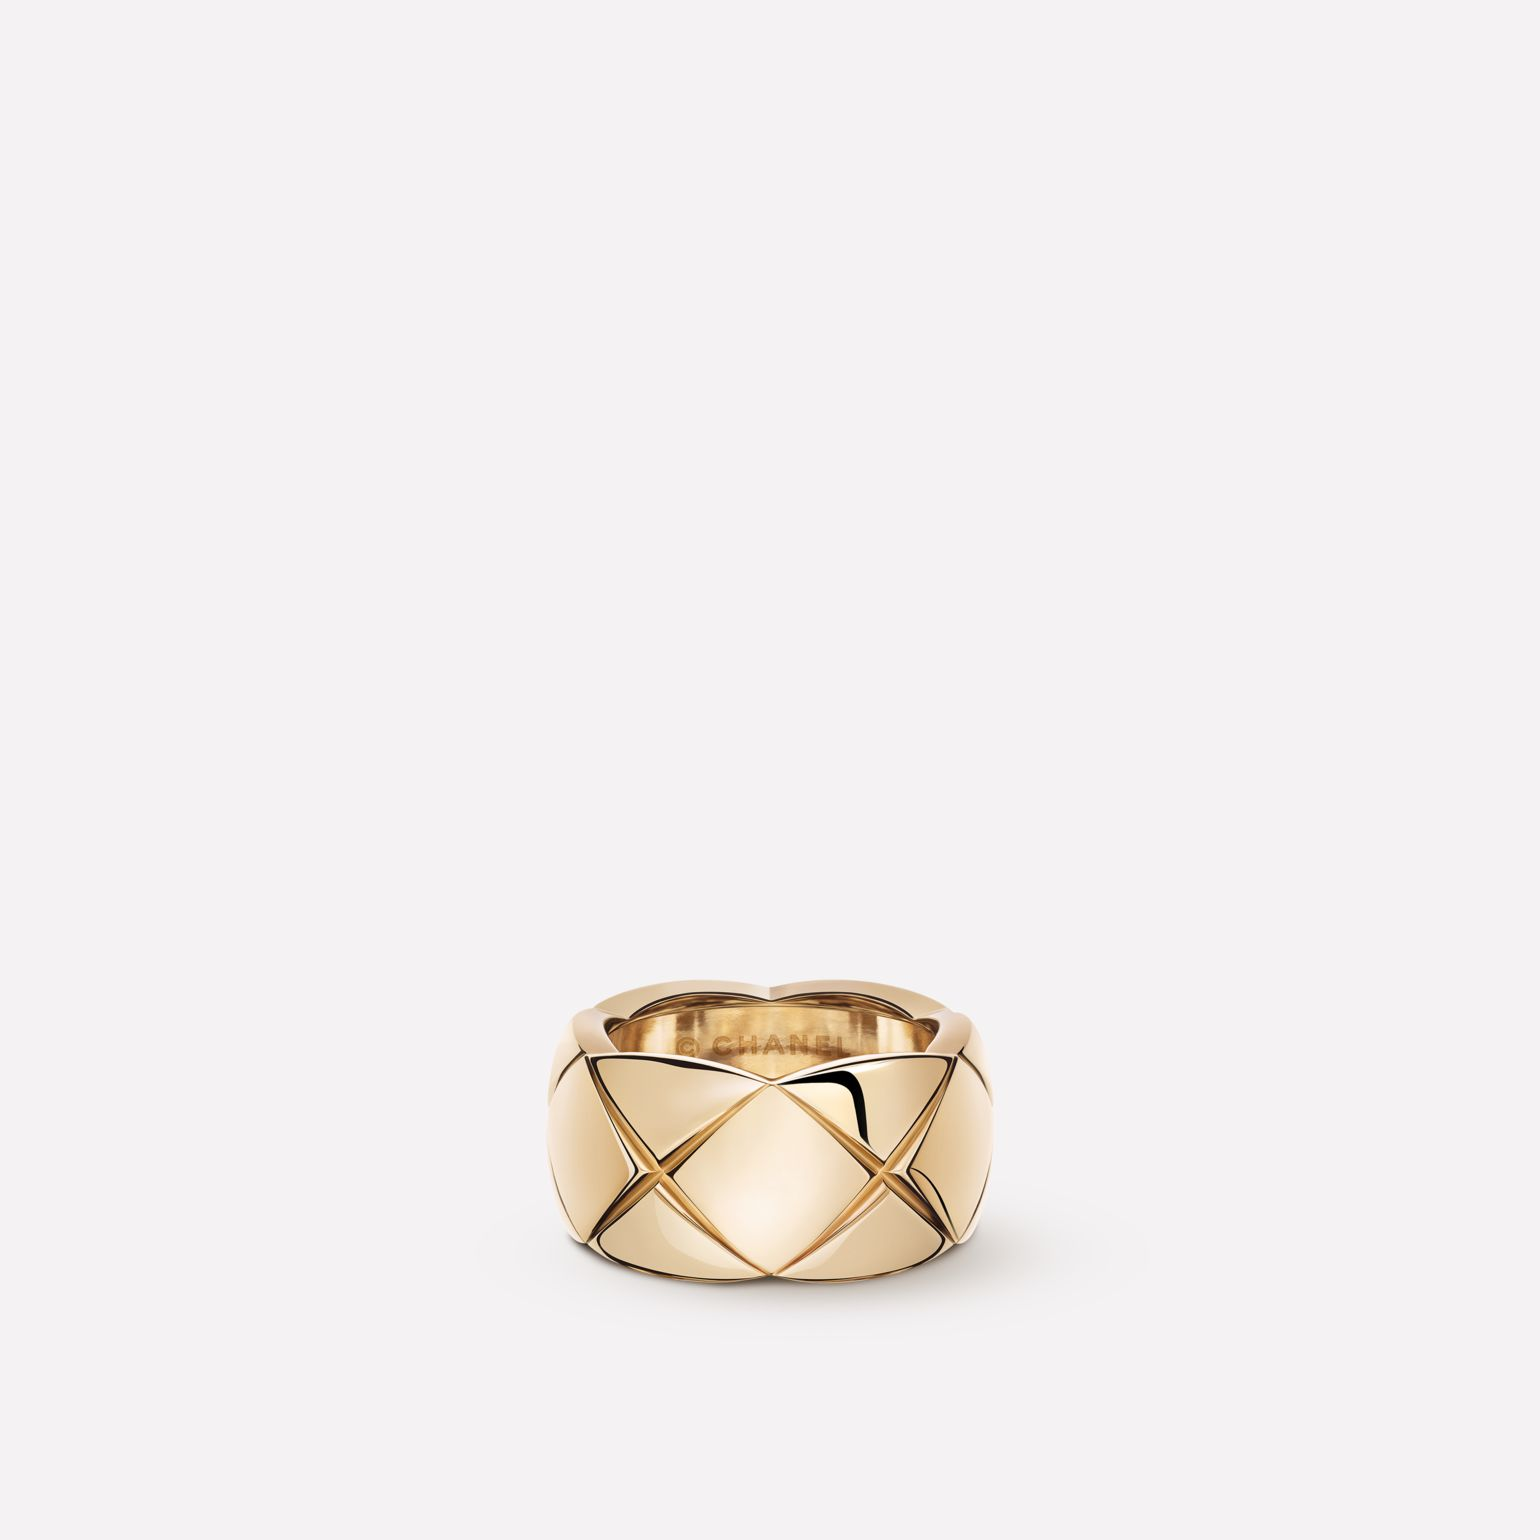 Coco Crush Ring Quilted motif ring in 18K BEIGE GOLD. Medium version.